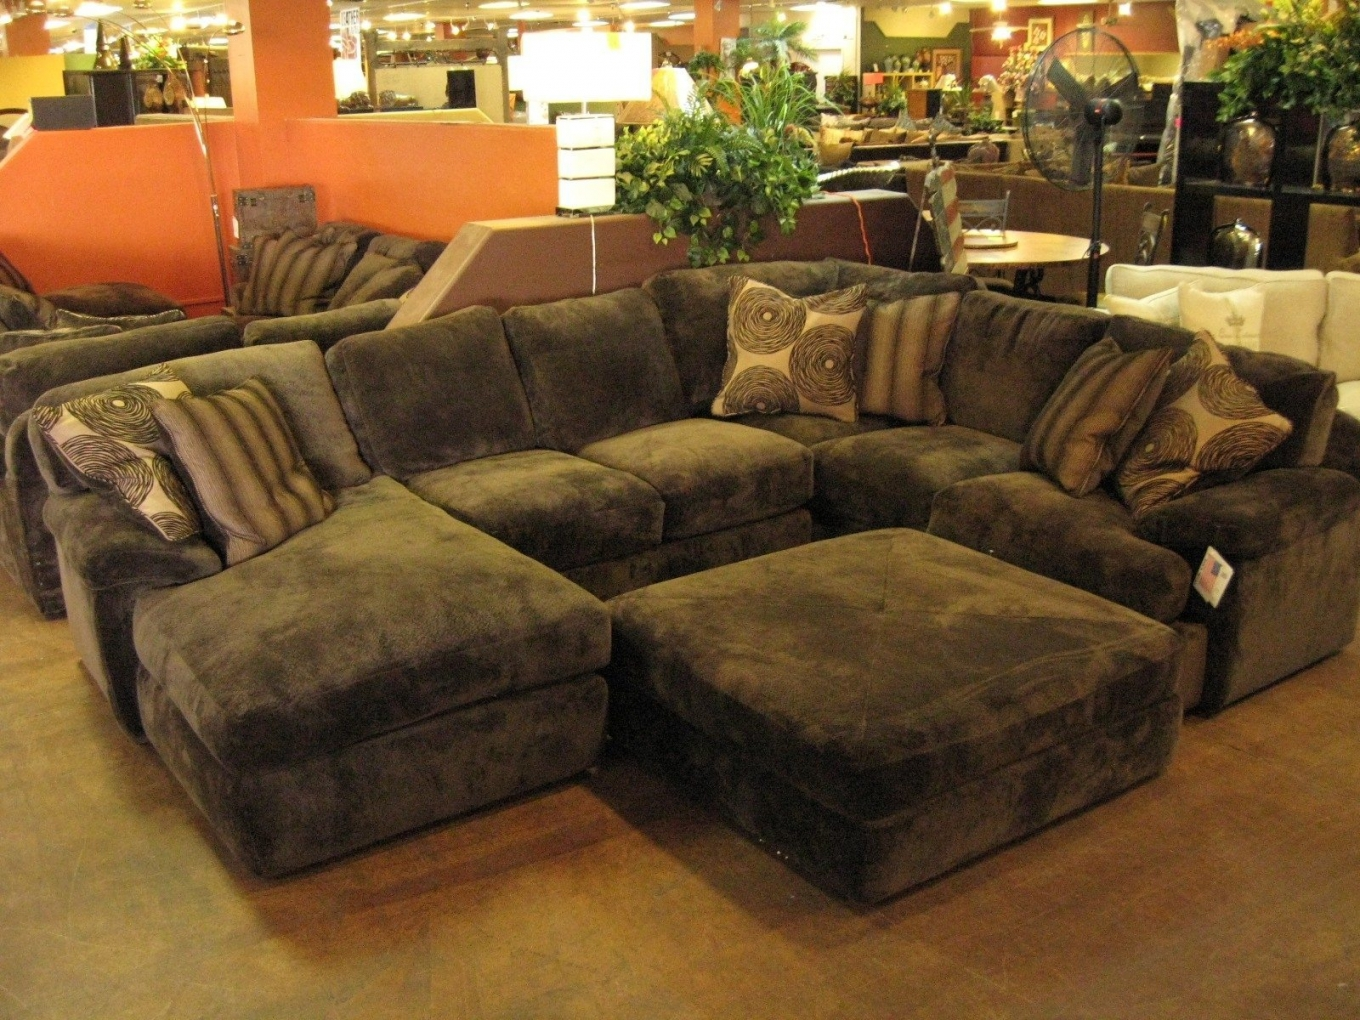 Comfy Sectional Sofa Best 25 Ideas On : best comfortable sectional sofa - Sectionals, Sofas & Couches